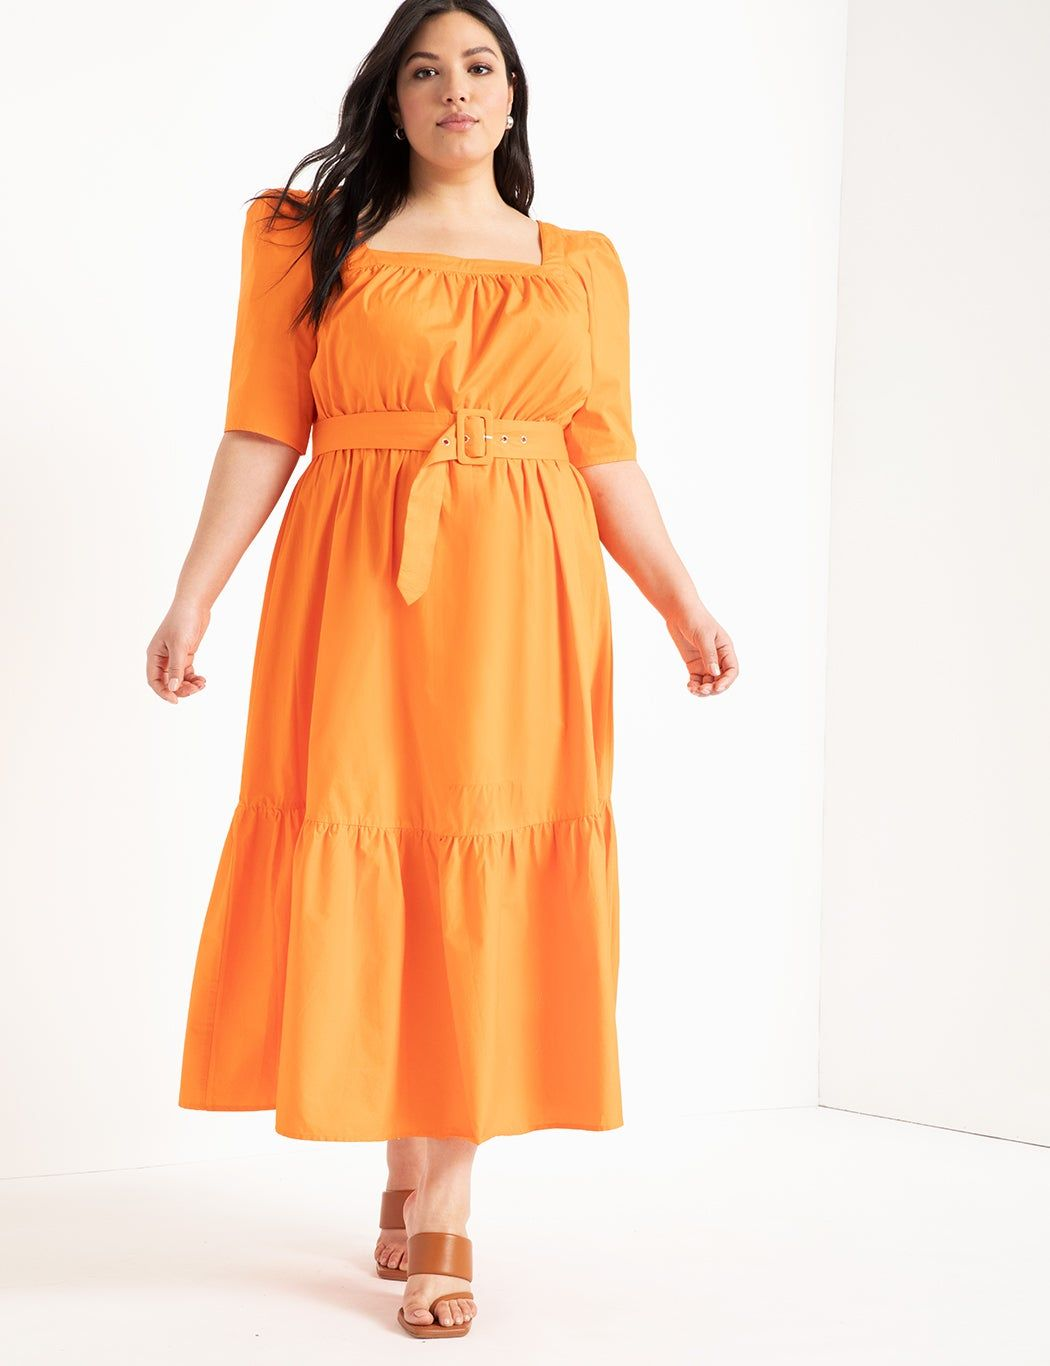 26 Dresses To Upgrade Your Spring Wedding Guest Attire Fit And Flare Dress Flare Dress Plus Size Dresses [ 1366 x 1050 Pixel ]